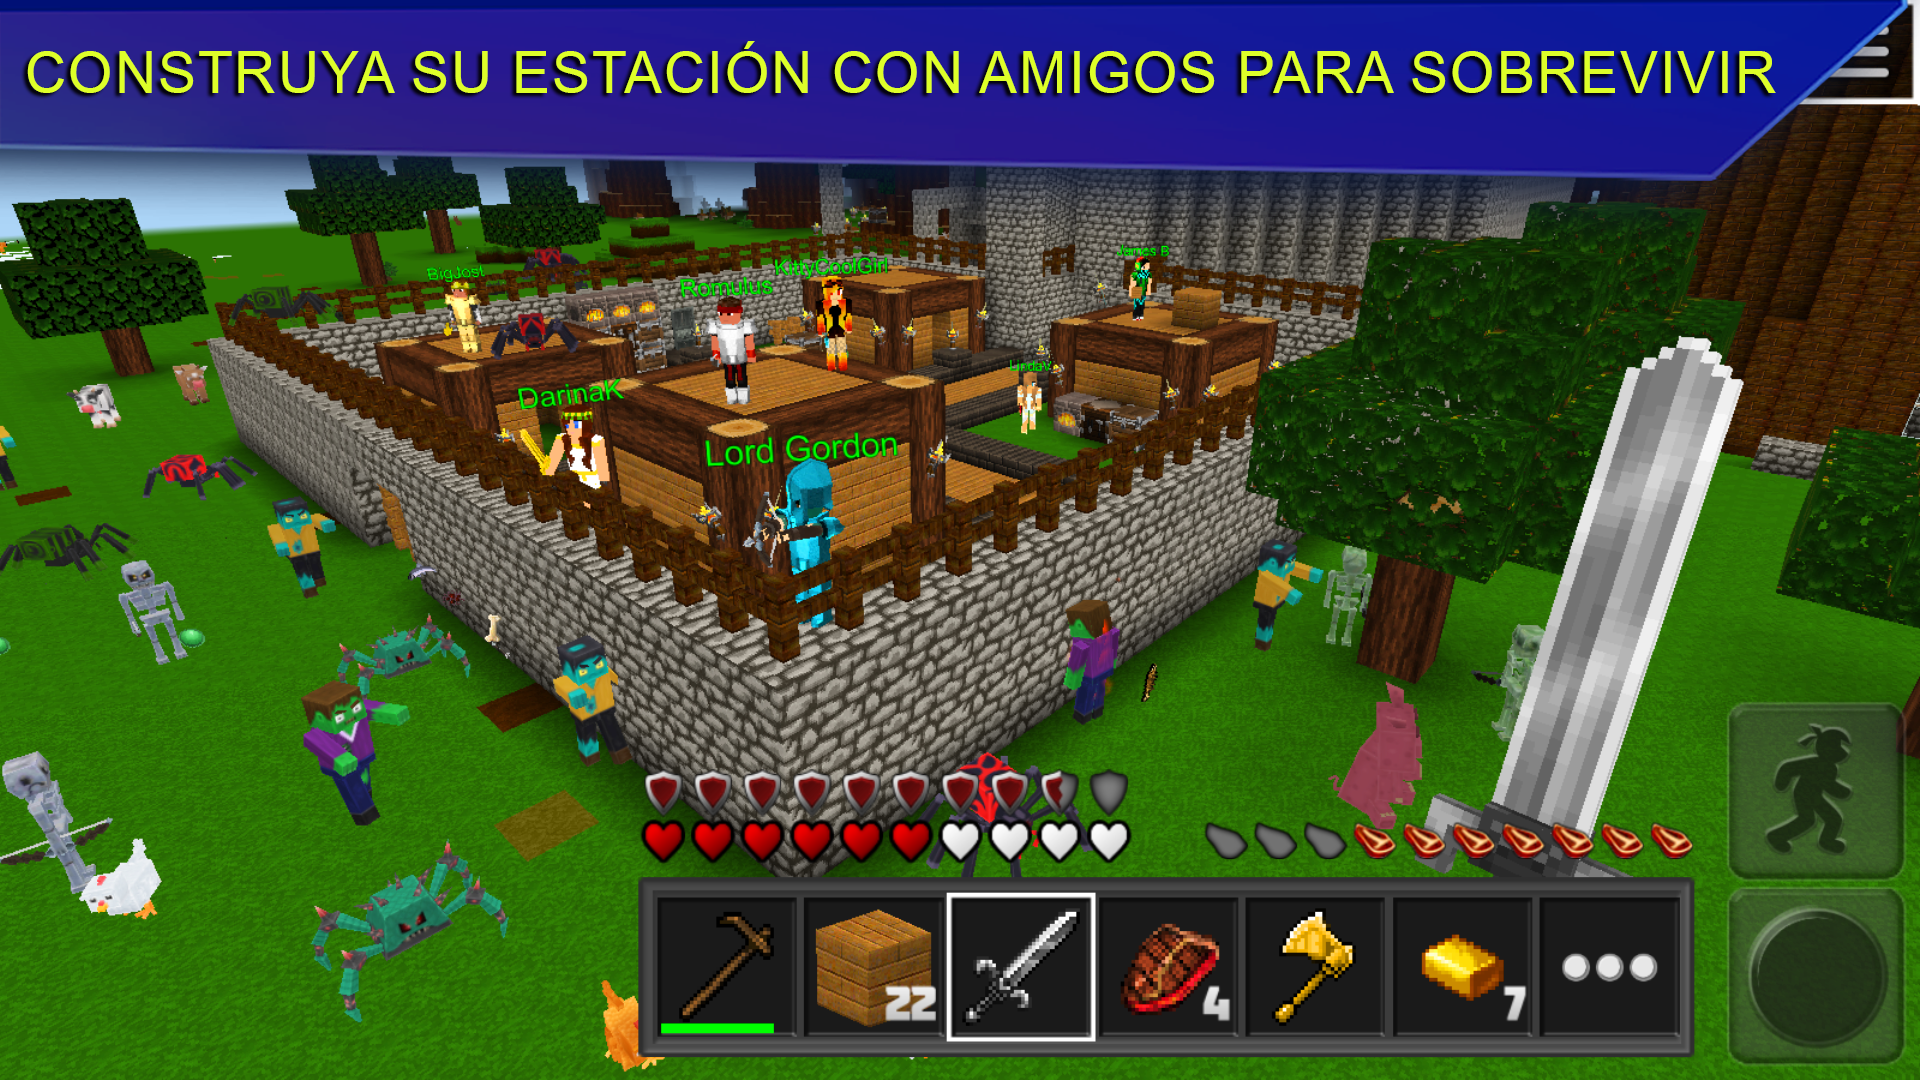 Planet of Cubes Survival Craft: Amazon.com.br: Amazon Appstore